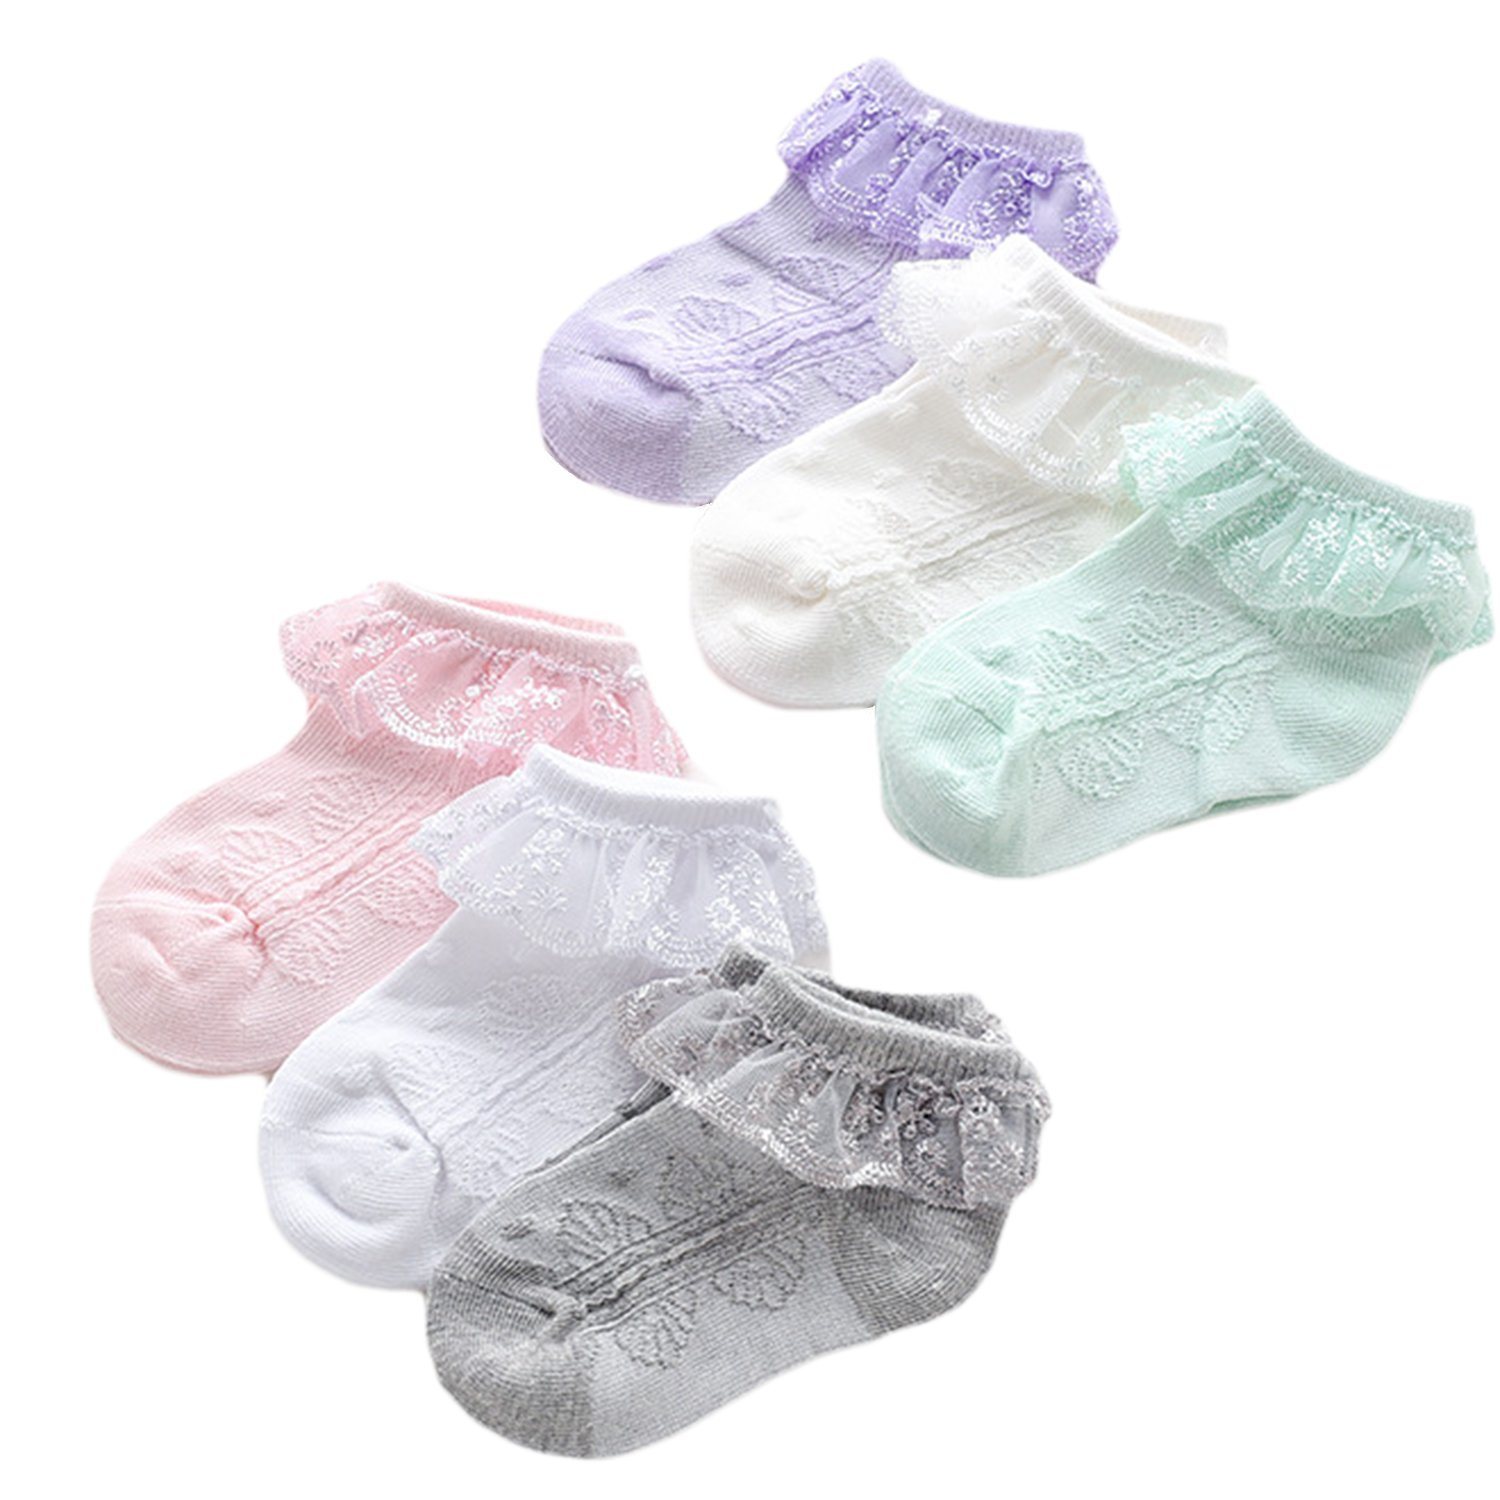 6 Pairs Lace Ankle Socks Baby Girl Pointelle Ruffled Cotton Socks For Infant & Toddler & Kid White/Off-White/Pink/Grey/Purple/Green for 1-2 Years